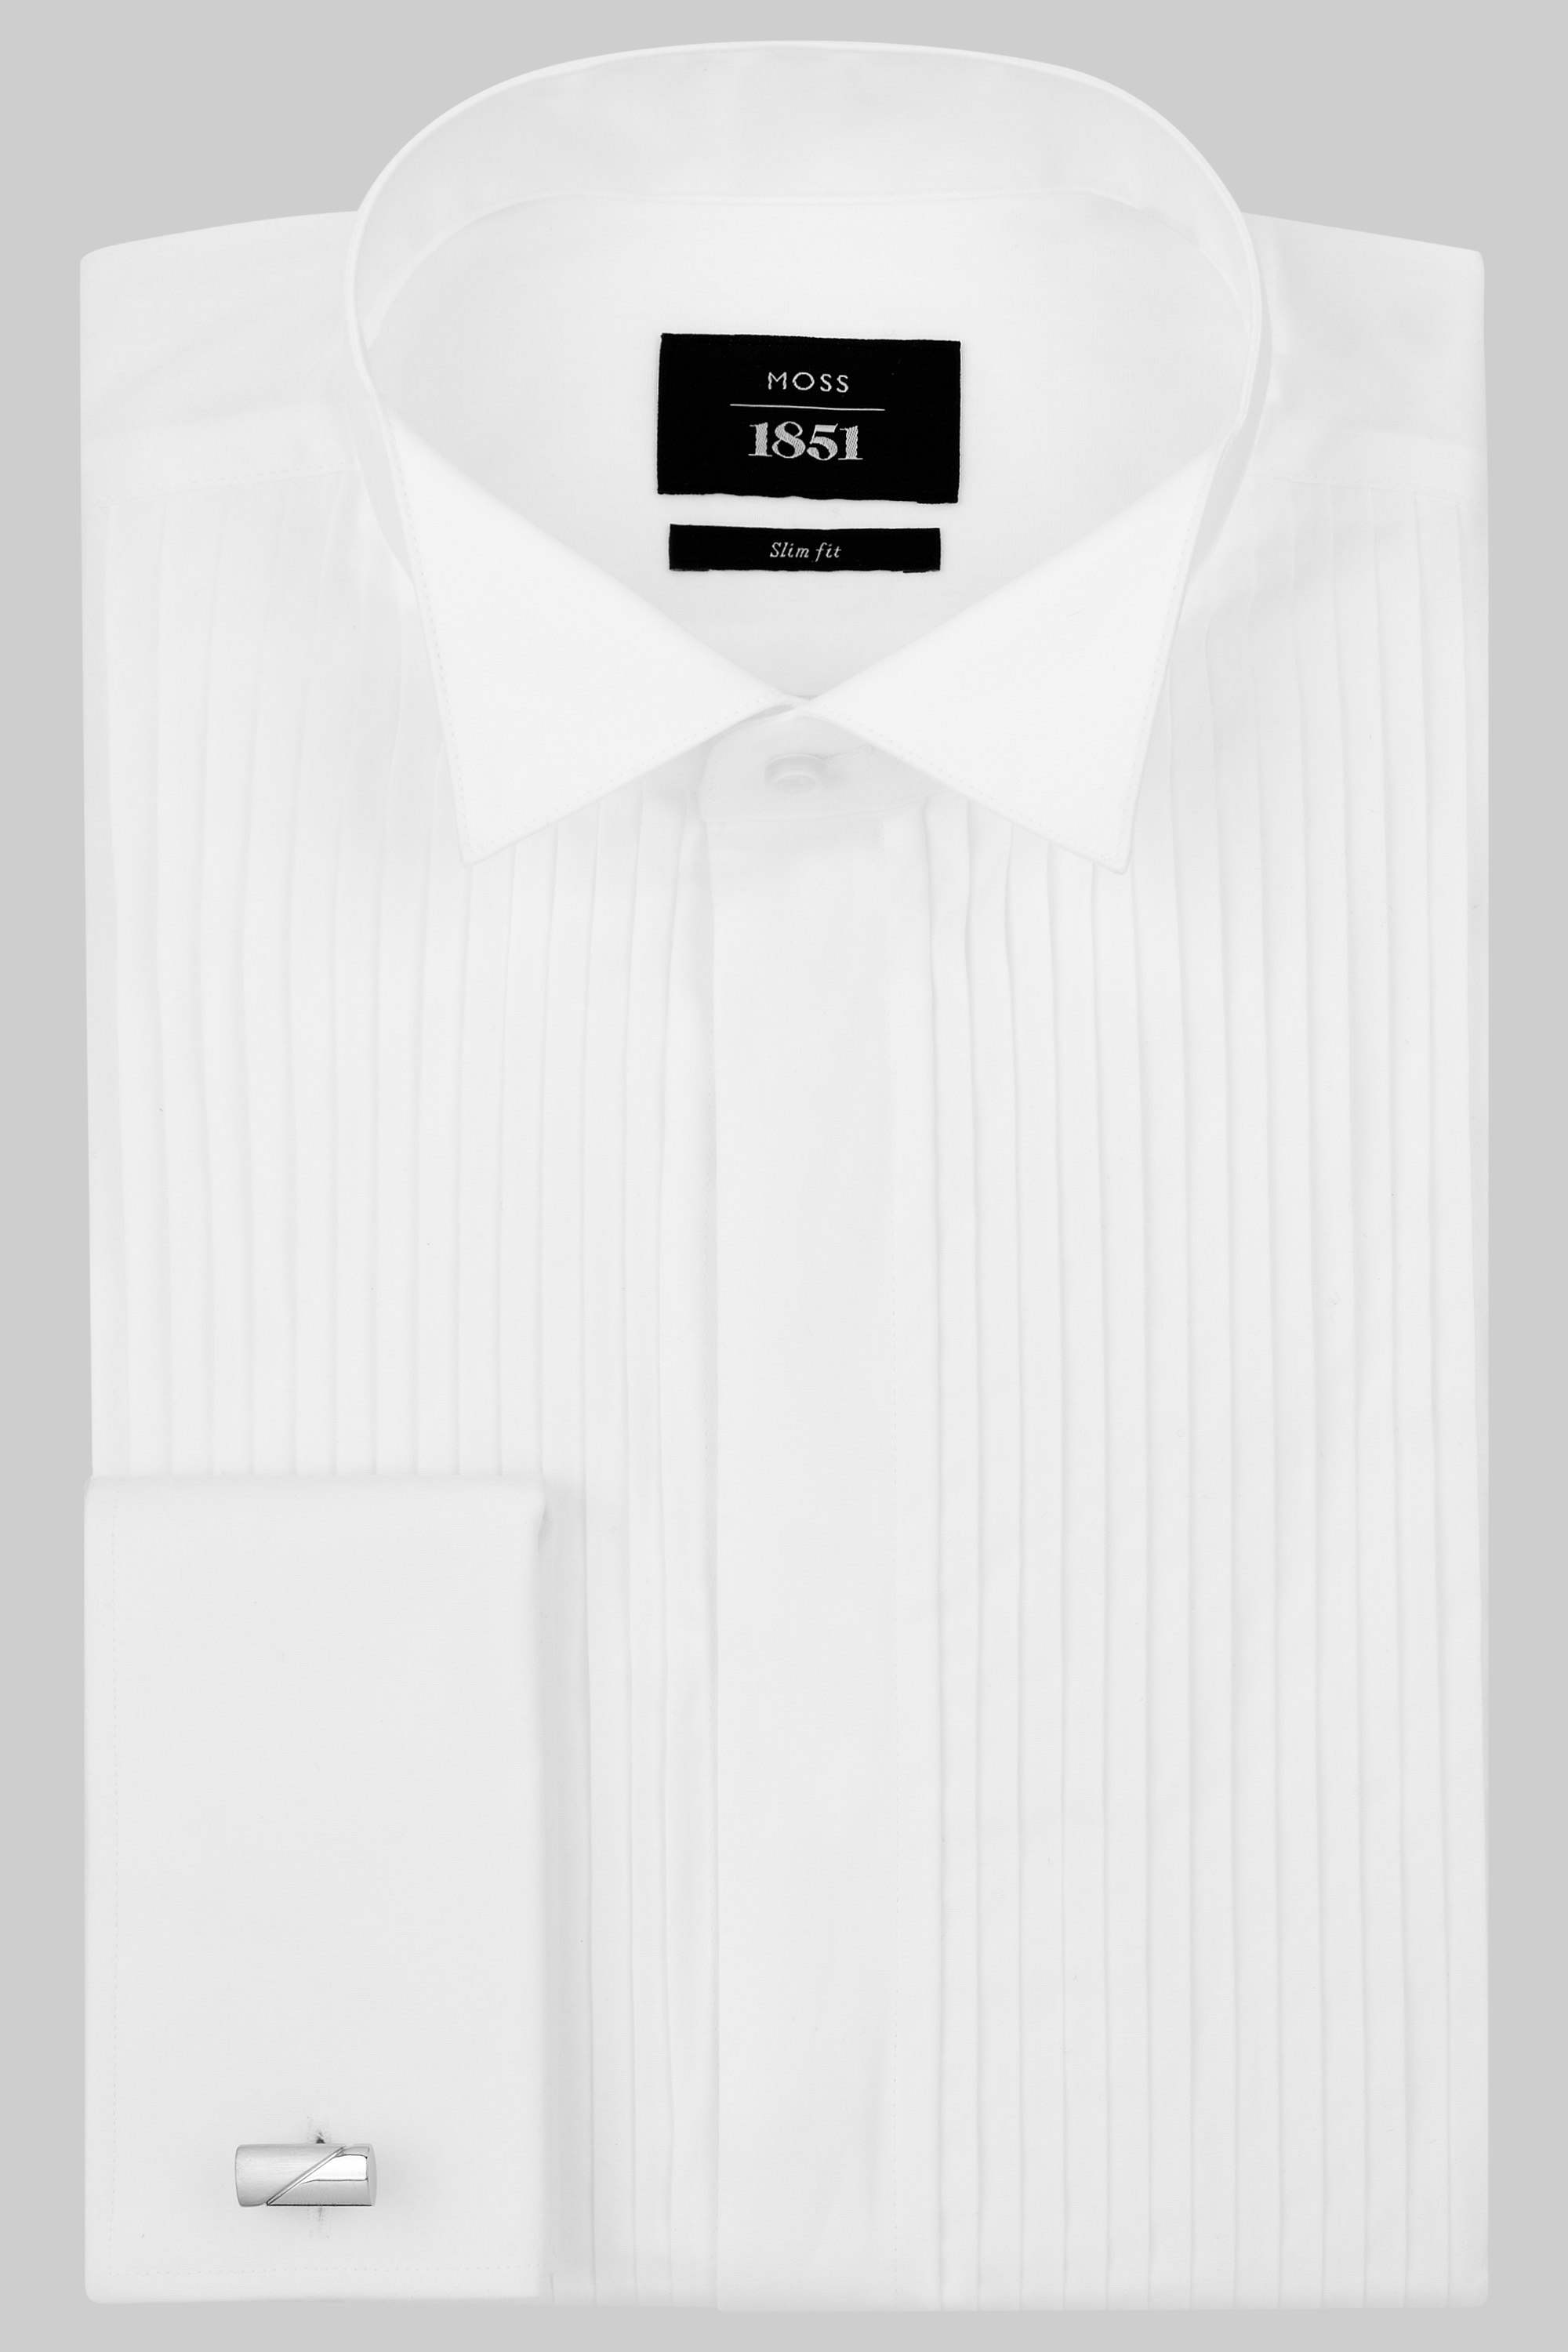 Moss 1851 Slim Fit Wing Collar Pleated White Dress Shirt